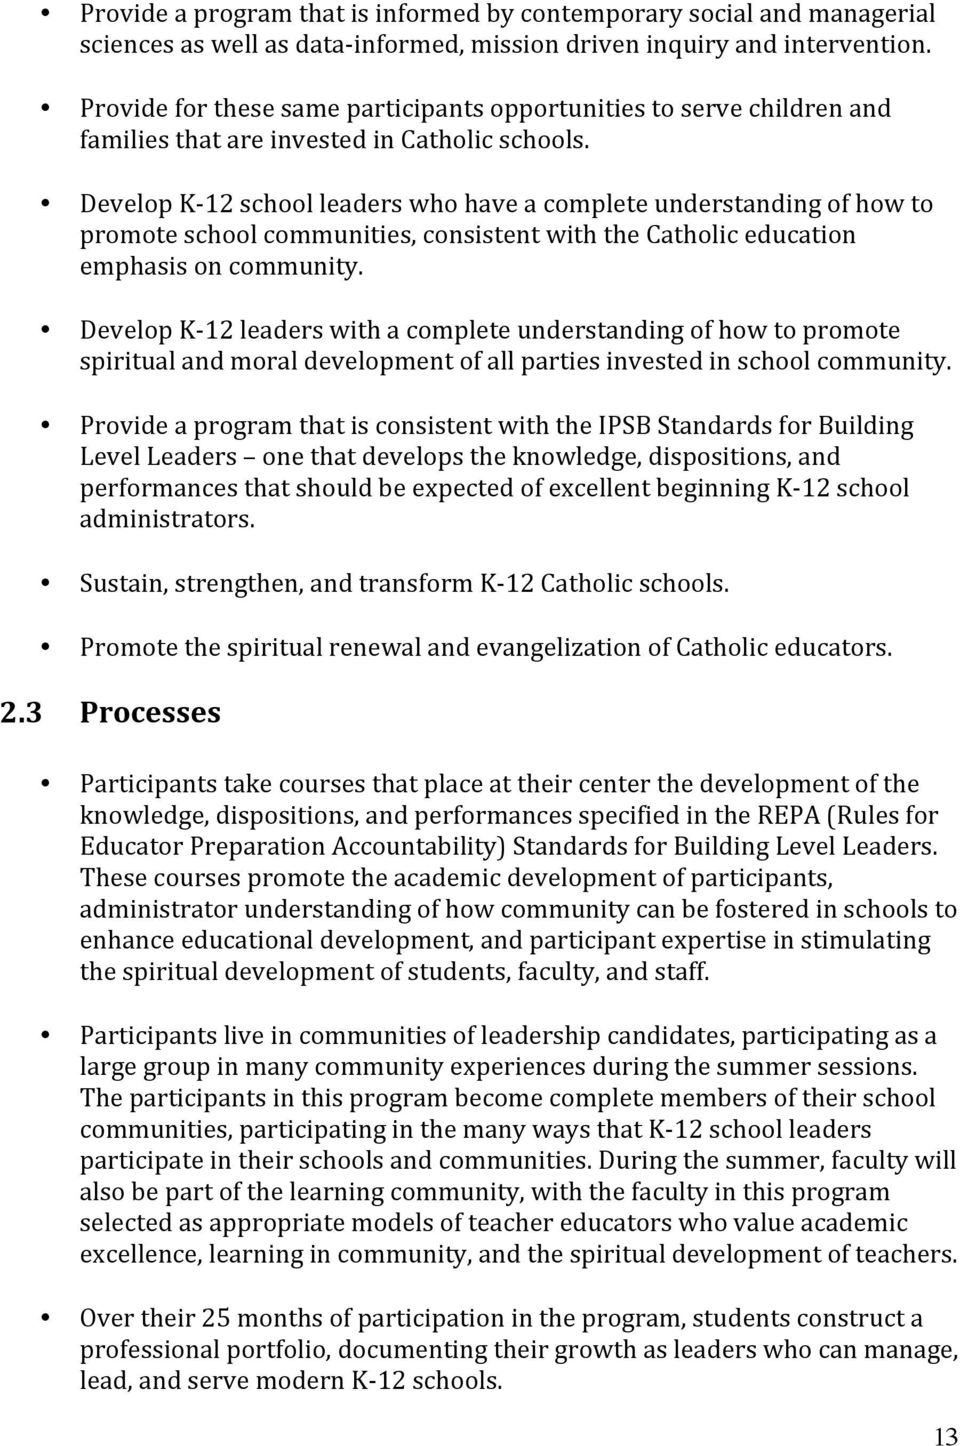 Develop K- 12 school leaders who have a complete understanding of how to promote school communities, consistent with the Catholic education emphasis on community.